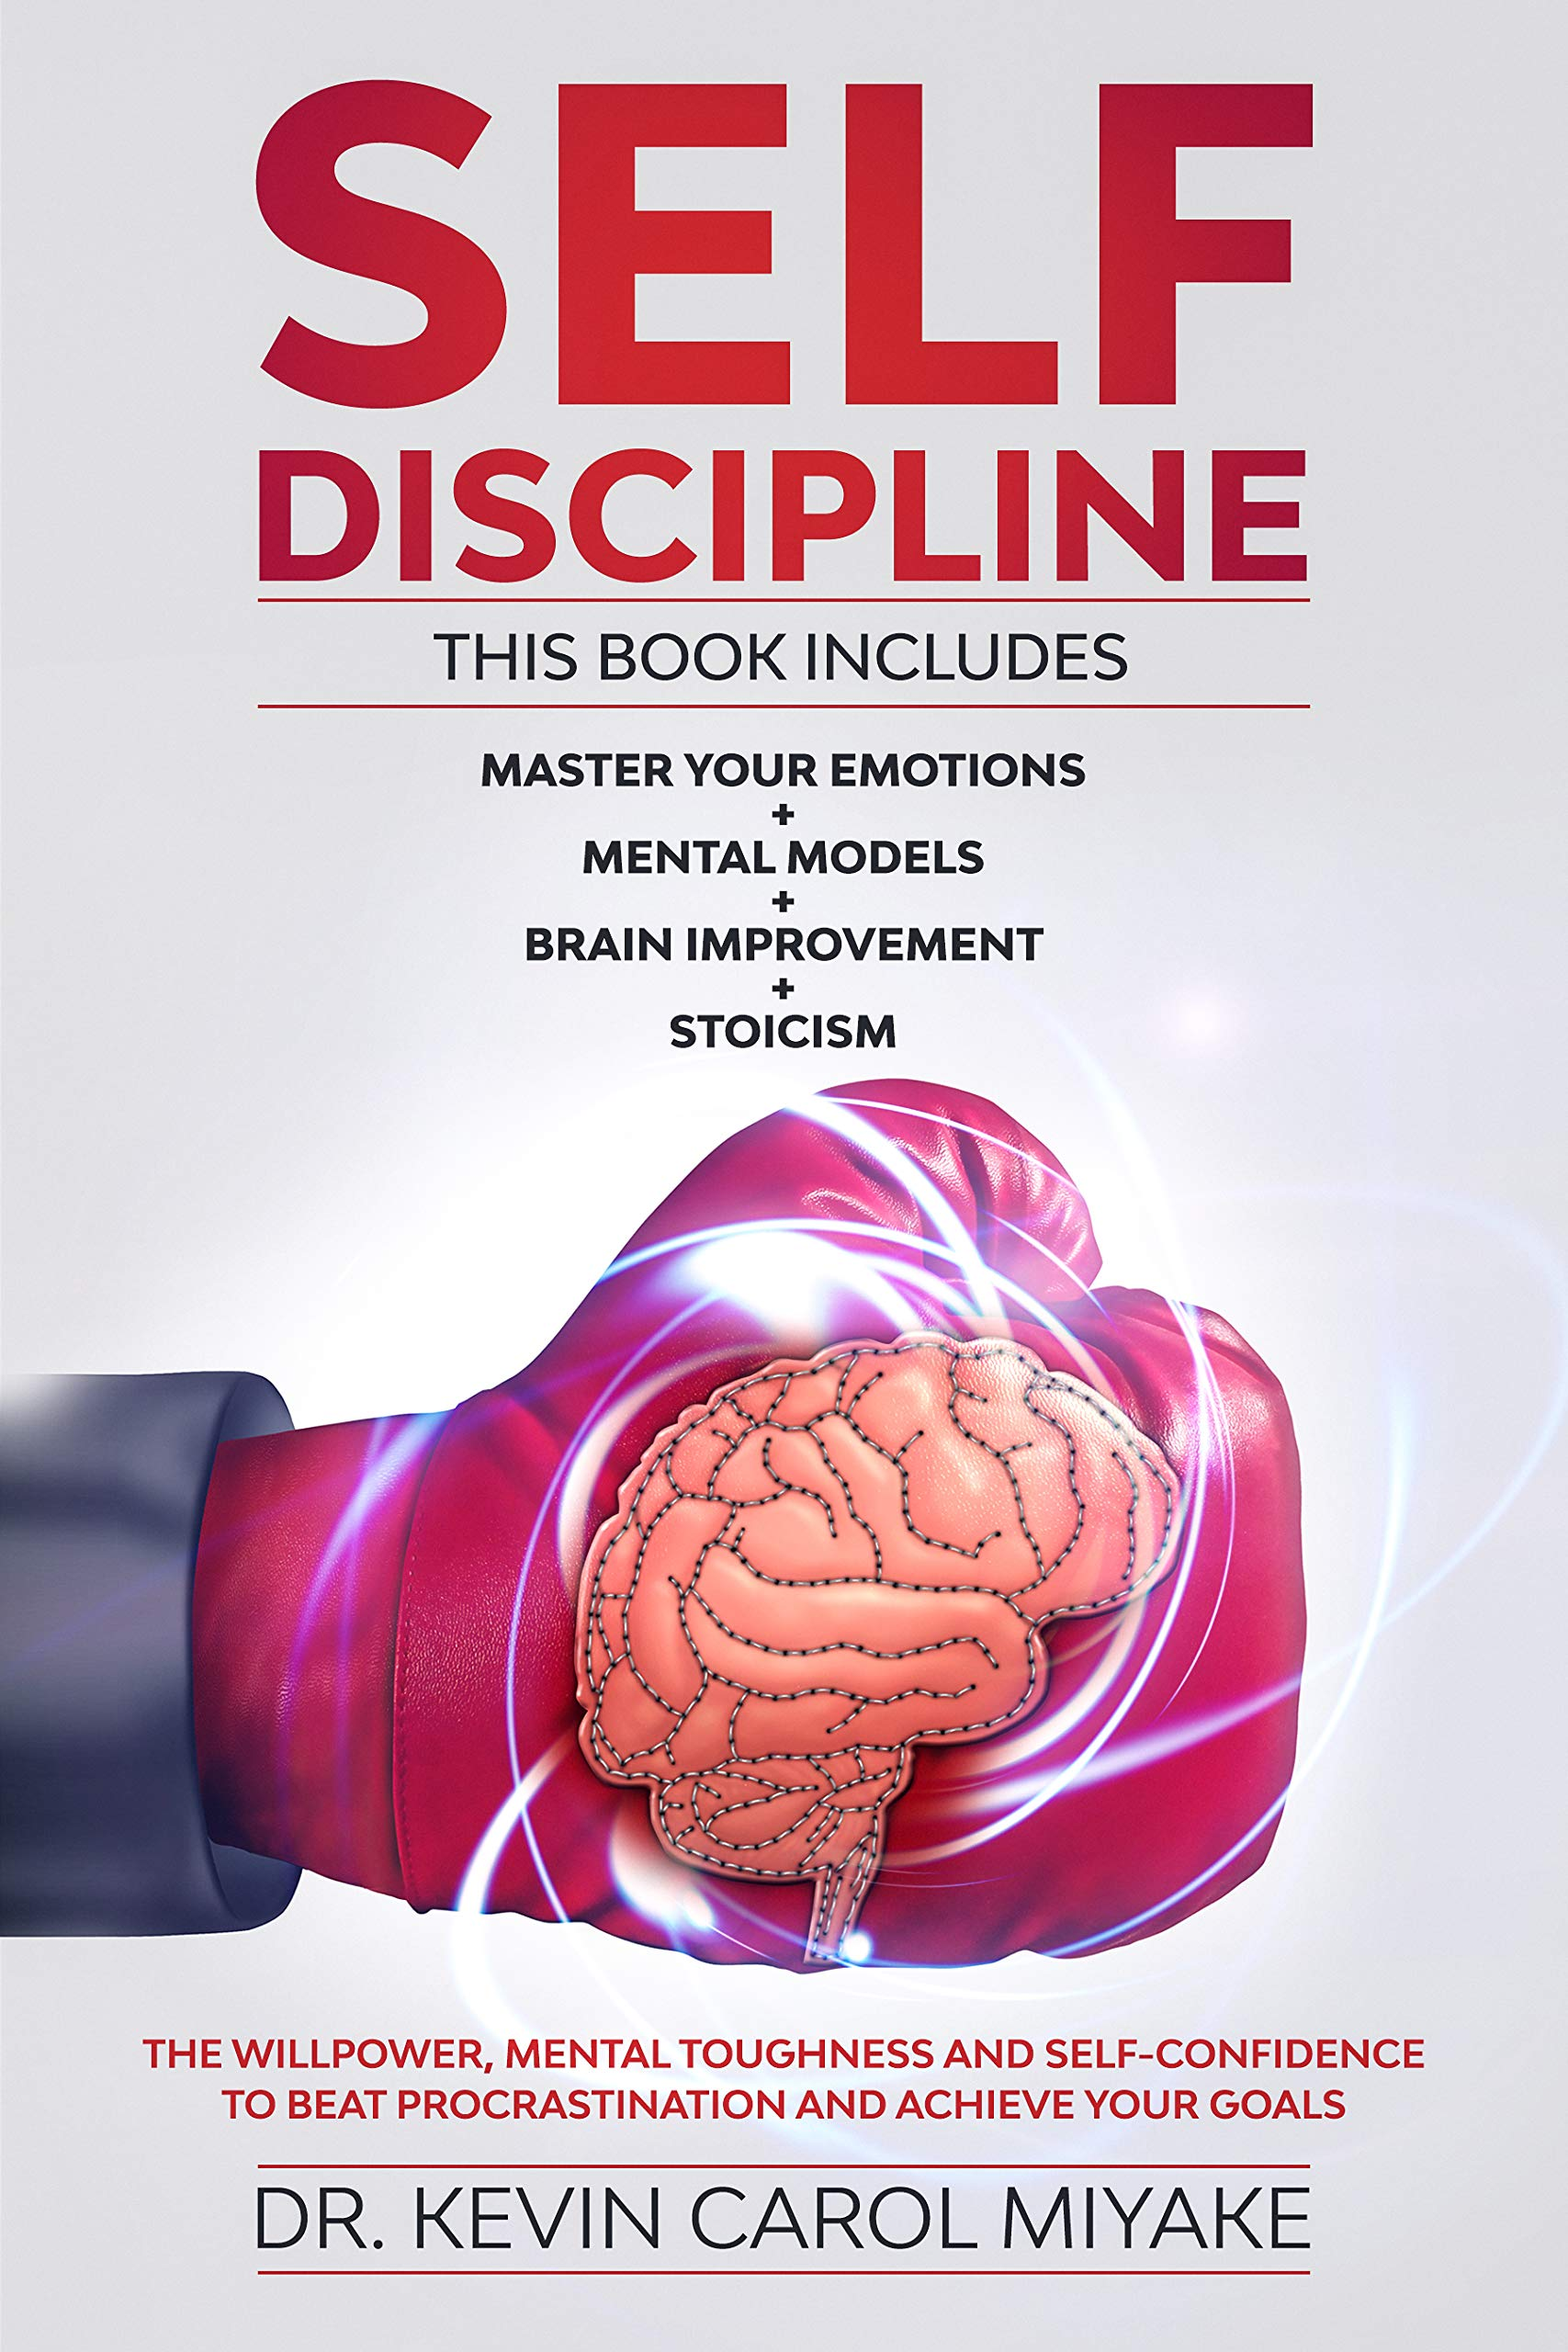 Self Discipline  4 Books In 1  Master Your Emotions + Mental Models + Brain Improvement + Stoicism. The Willpower Mental Toughness And Self Confidence ... And Achieve Your Goals  English Edition